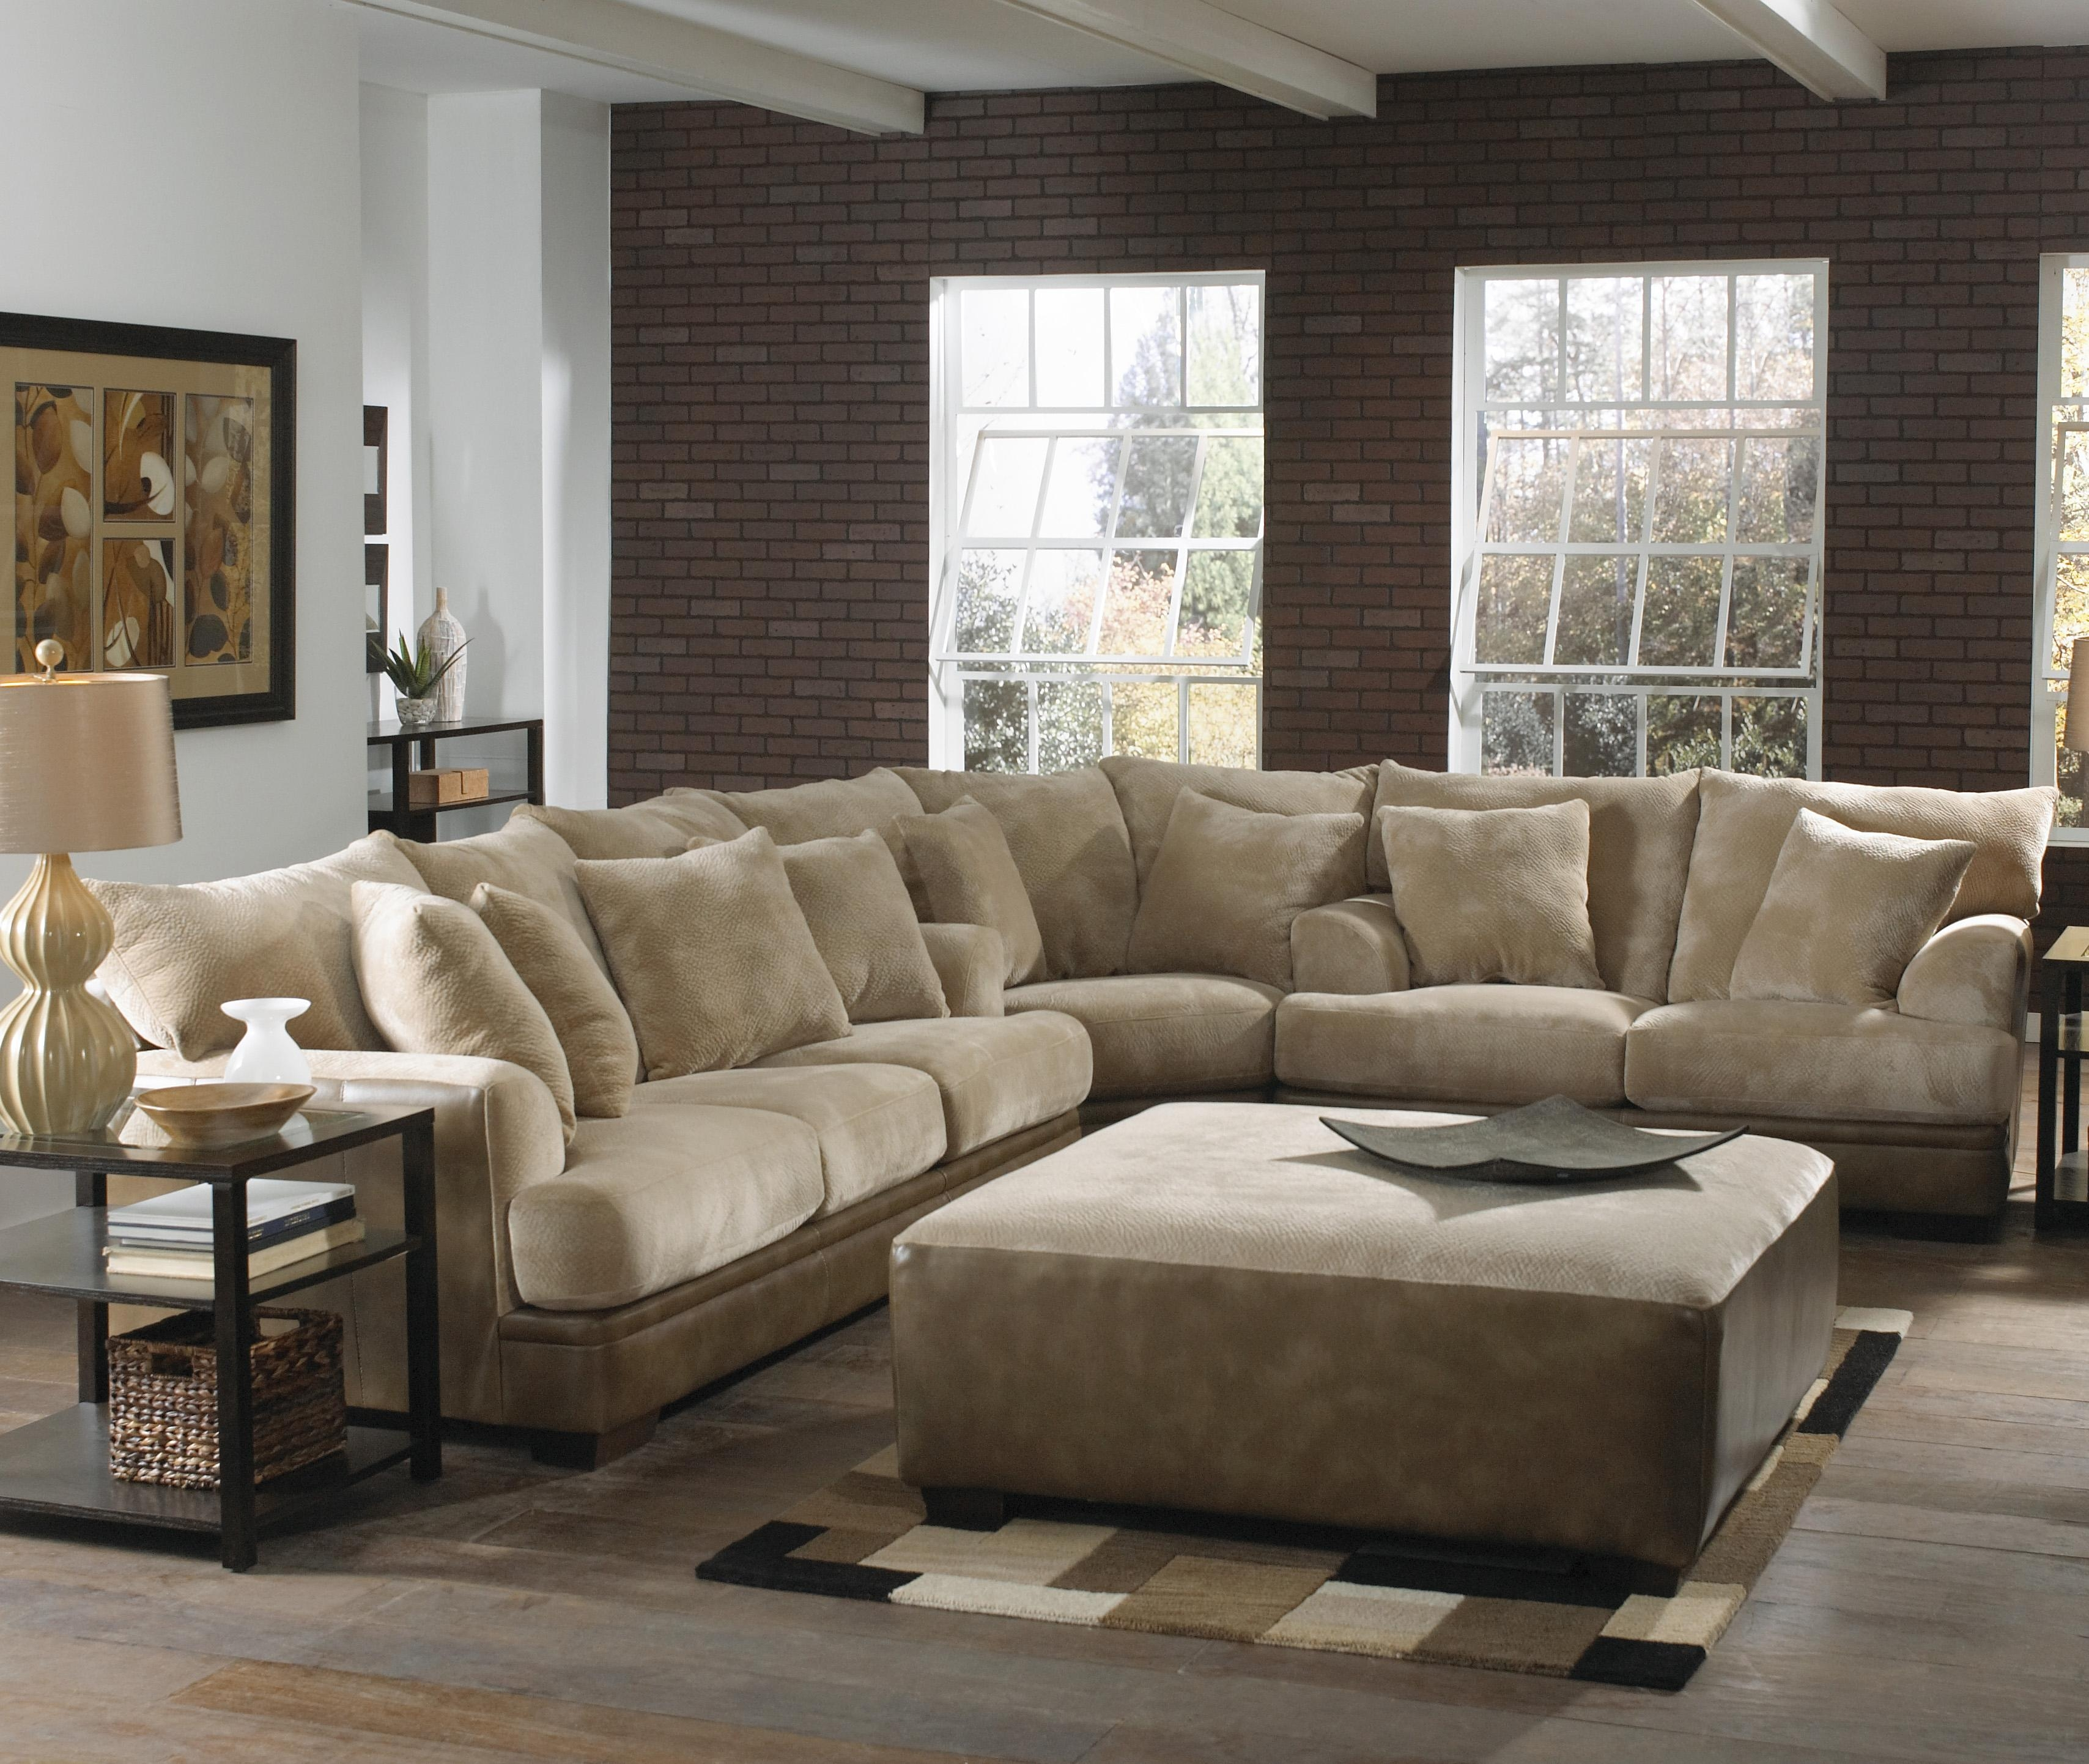 Barkley Large L Shaped Sectional Sofa With Right Side Loveseat Pertaining To Comfy Sectional Sofa (Image 1 of 15)